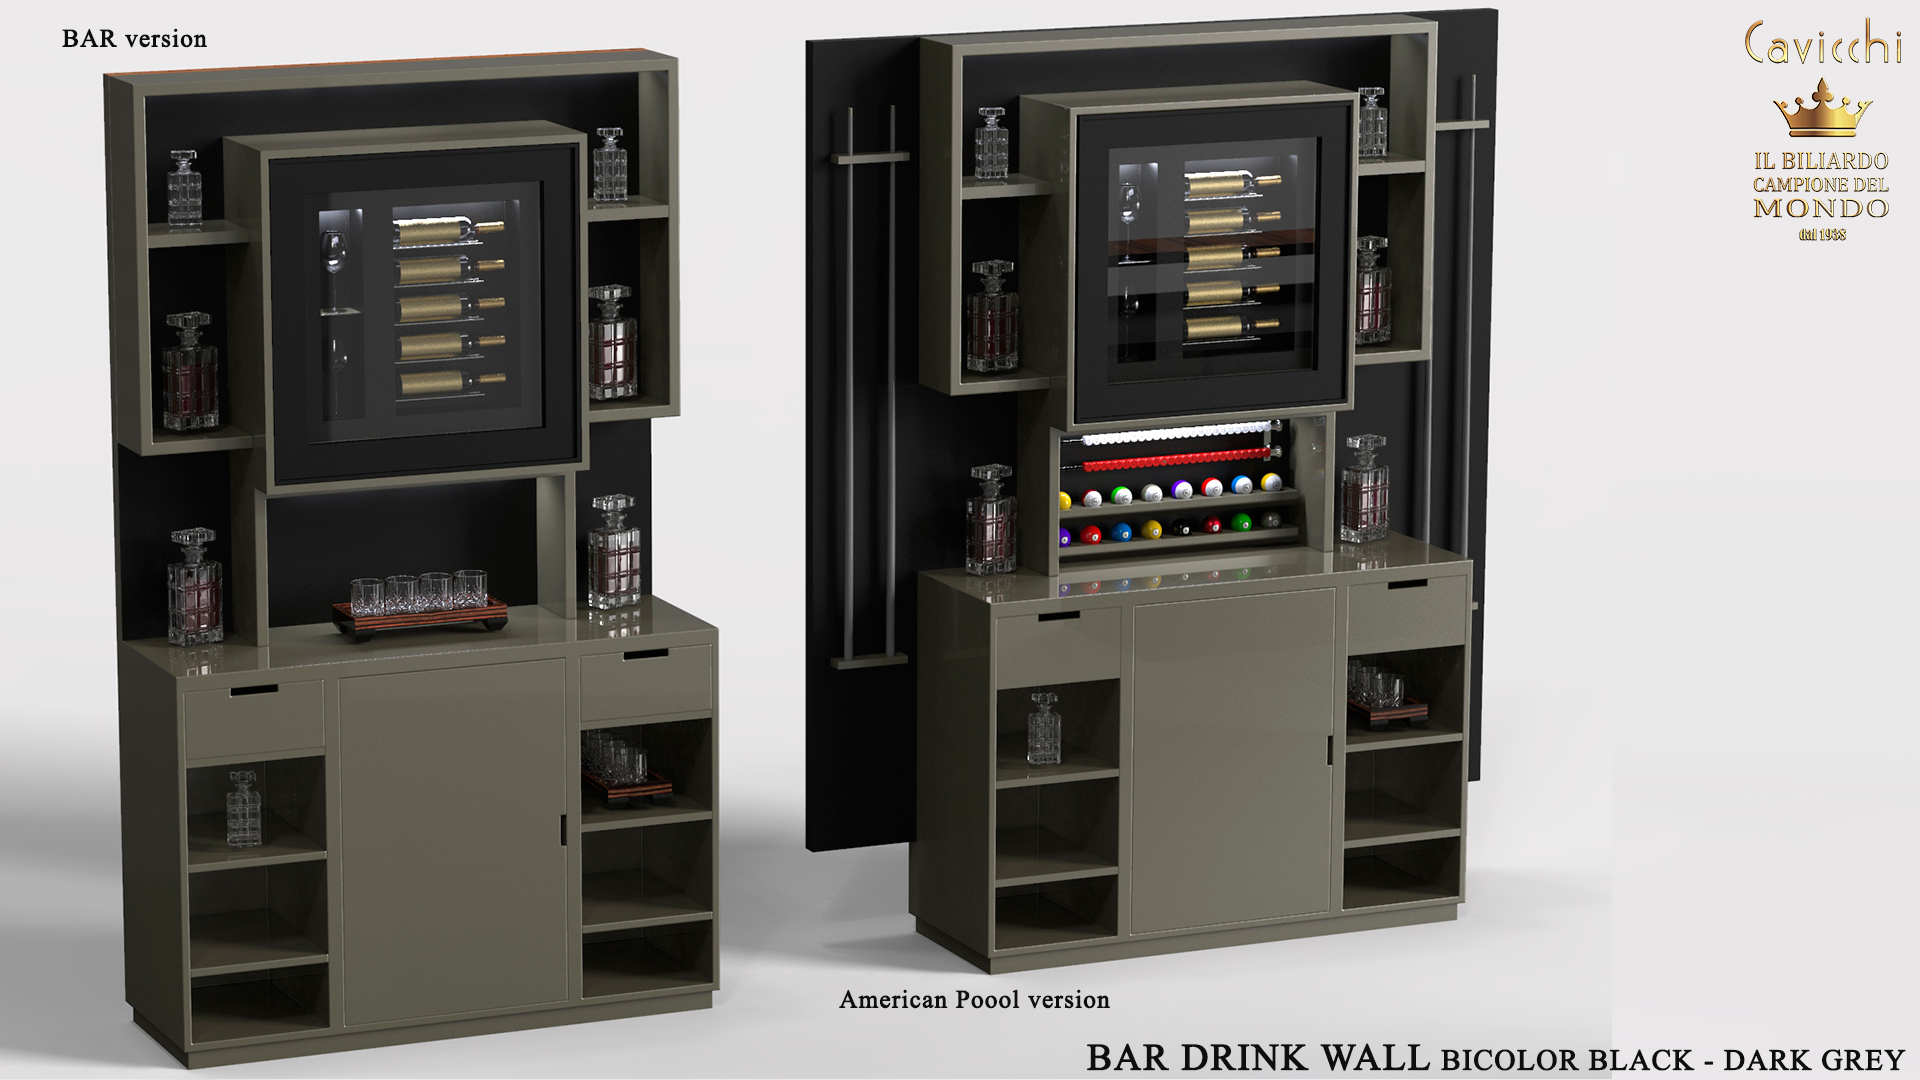 EXCLUSIVE MOBILE BAR DRINK WALL 6